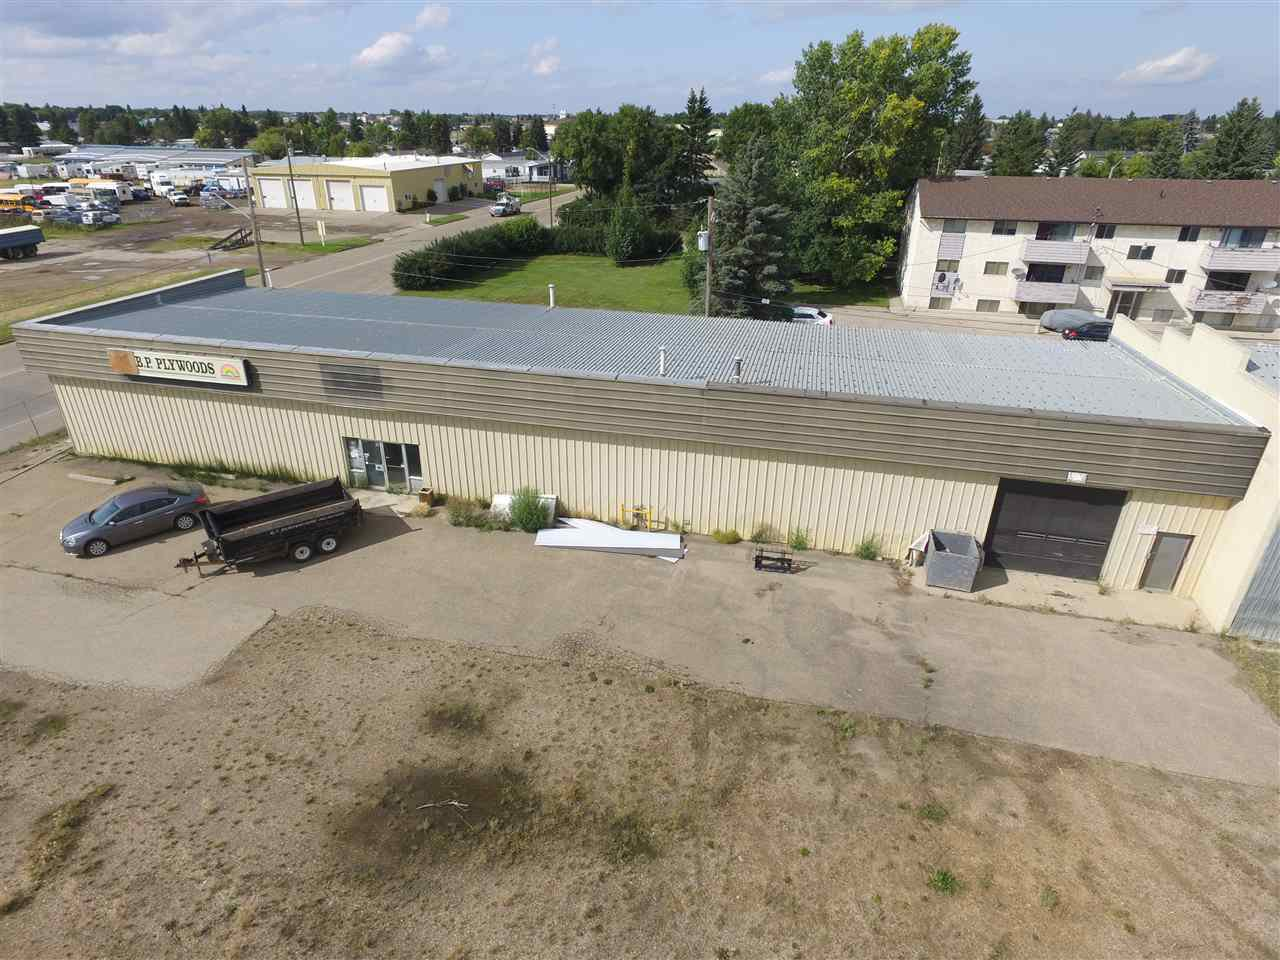 Main Photo: 4620 40 Ave: Wetaskiwin Industrial for sale : MLS®# E4170312